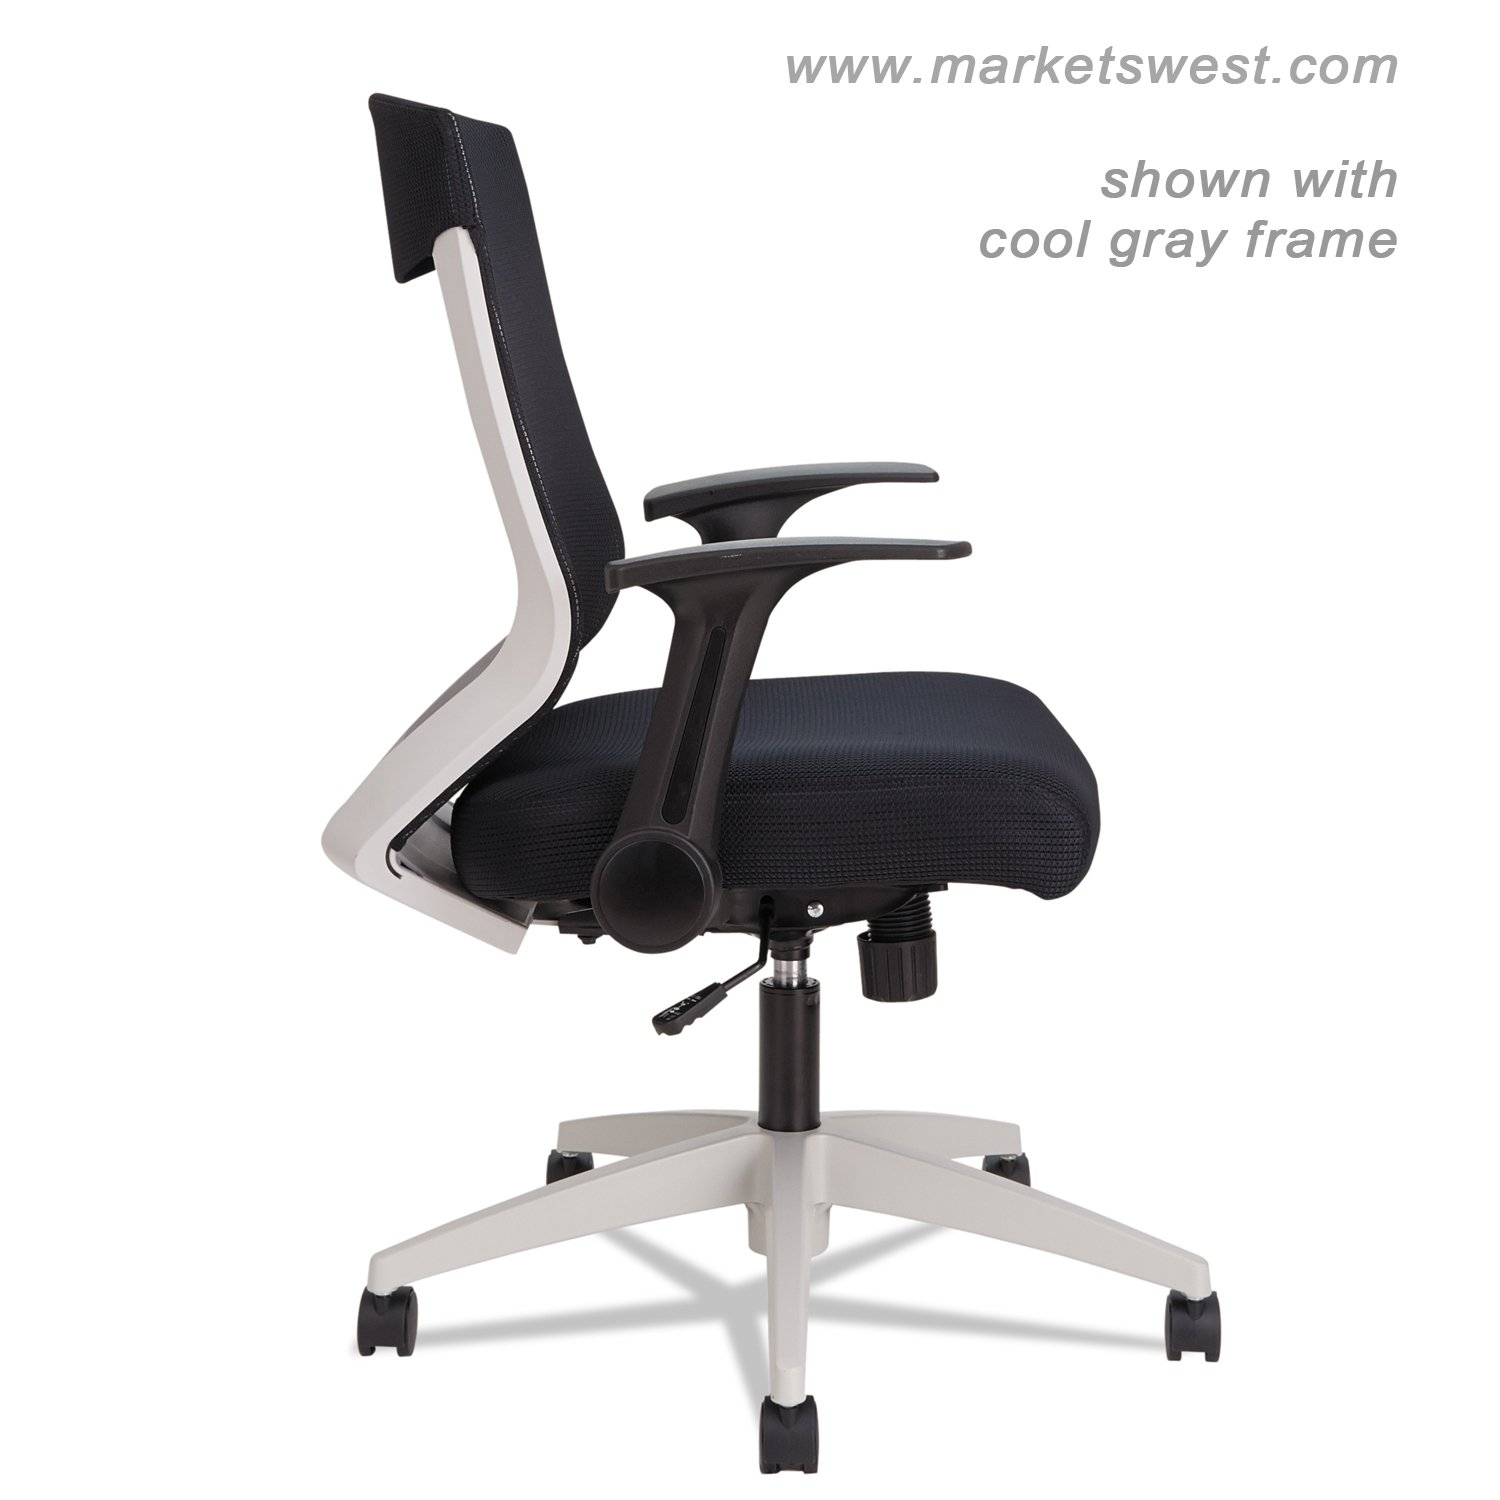 Alera Office Chairs Alera Eb K Series Synchro Mid Back Flip Arm Mesh Chair Black Cool Gray Frame